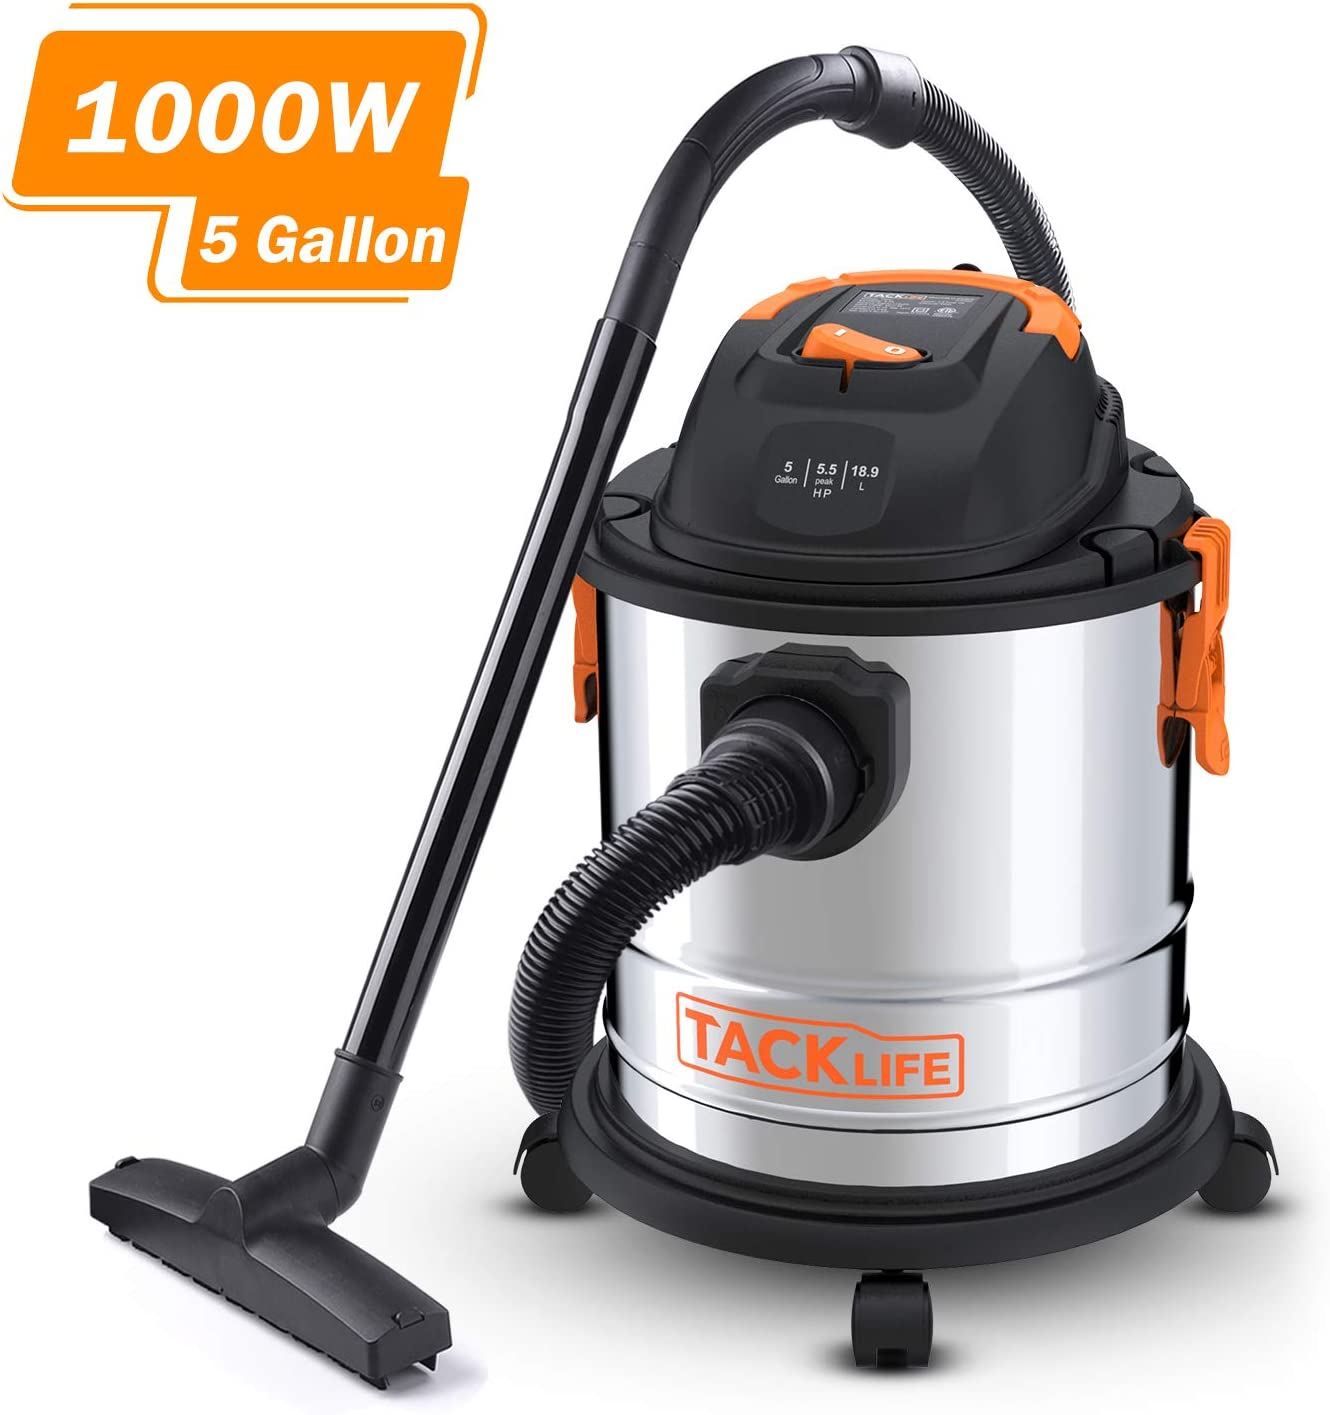 Stainless Steel Shop Vac, TACKLIFE 5.5 Peak HP, 5 Gallon, 1000W Wet Dry Vacuum, Cover 320 Square Feet Clean Range, 4-Layer Filtration System, Dry Wet Blow 3 in 1 for Cleaning Needs-PVC02A